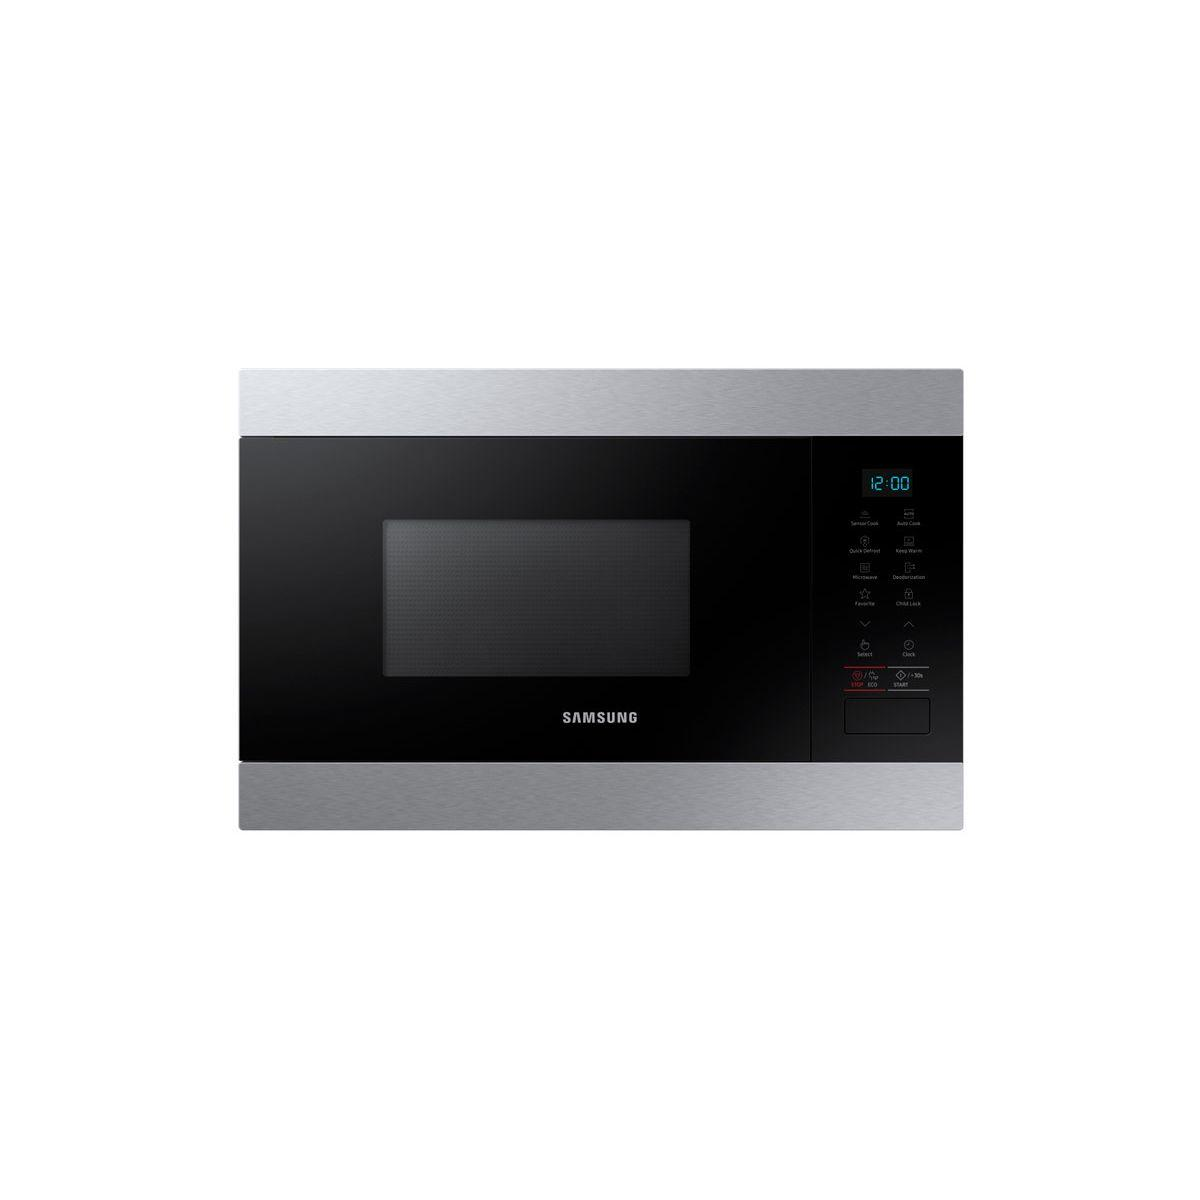 Micro ondes encastrable samsung ms22m8074at - livraison offerte : code livp (photo)